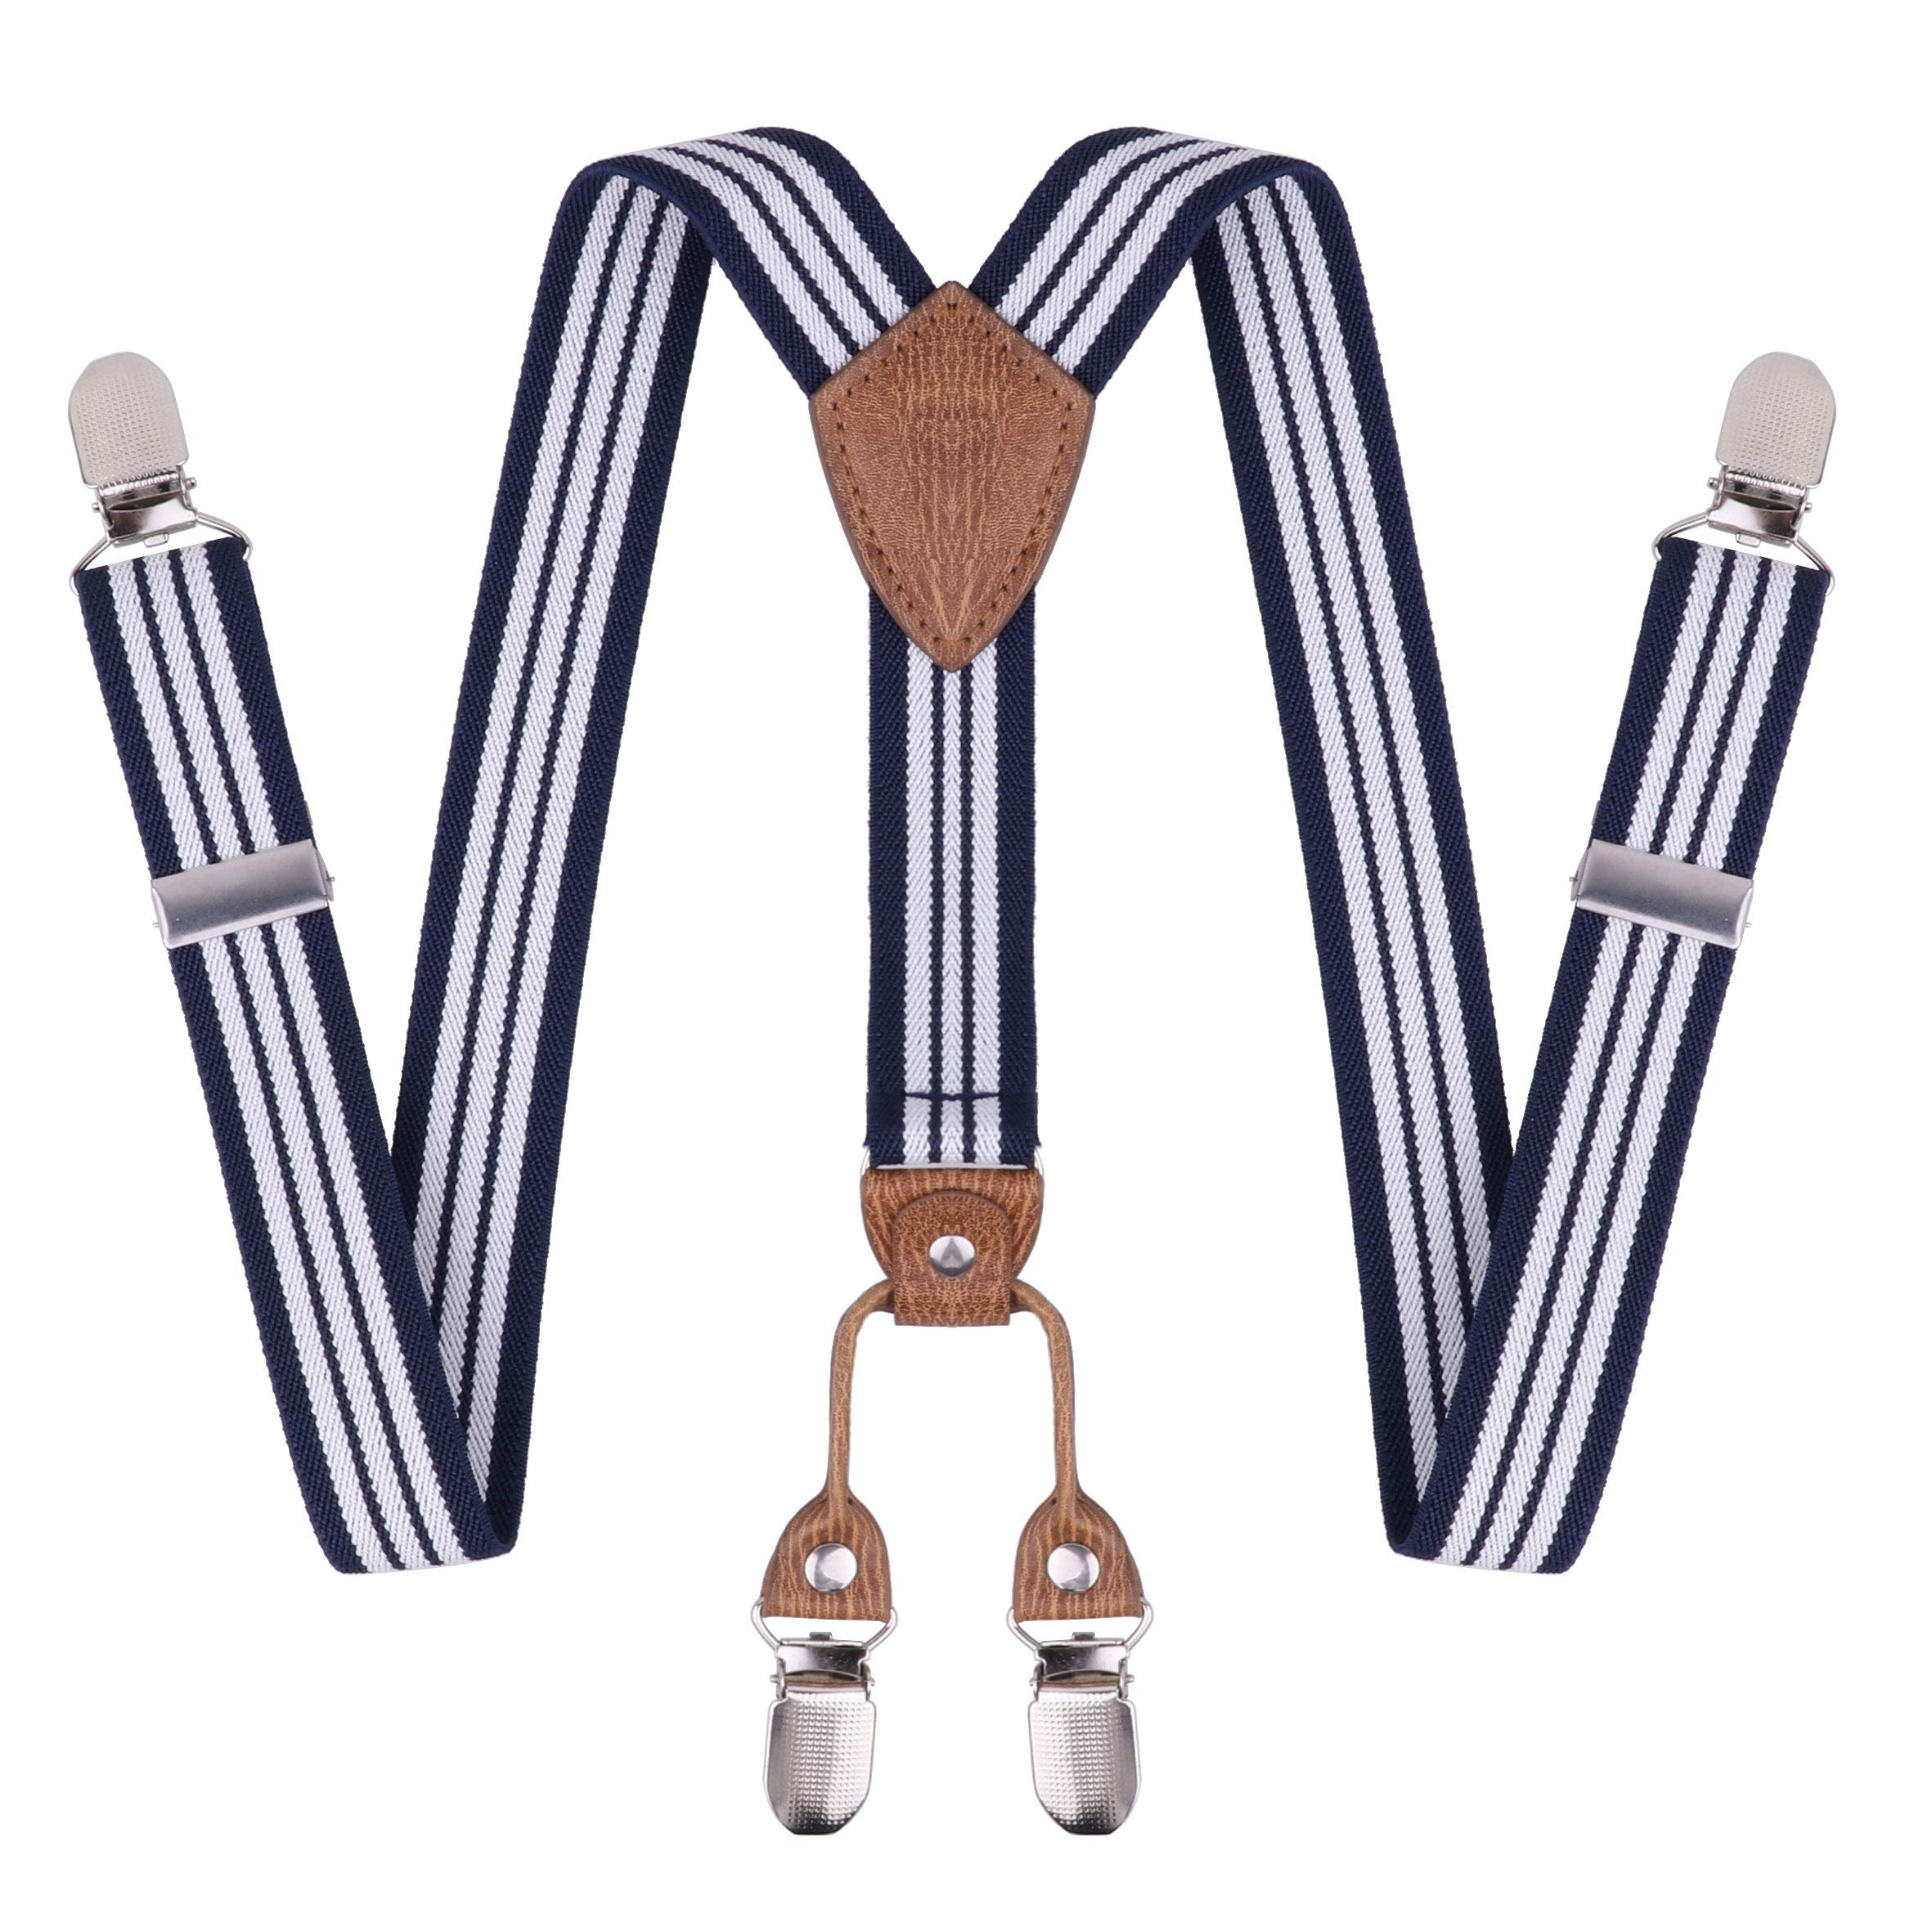 dPois Kids Boys Girls' Adjustable Y Back Elastic Heavy Duty Suspenders Tuxedo Accessory with 4 Metal Clips Navy Blue&White One Size